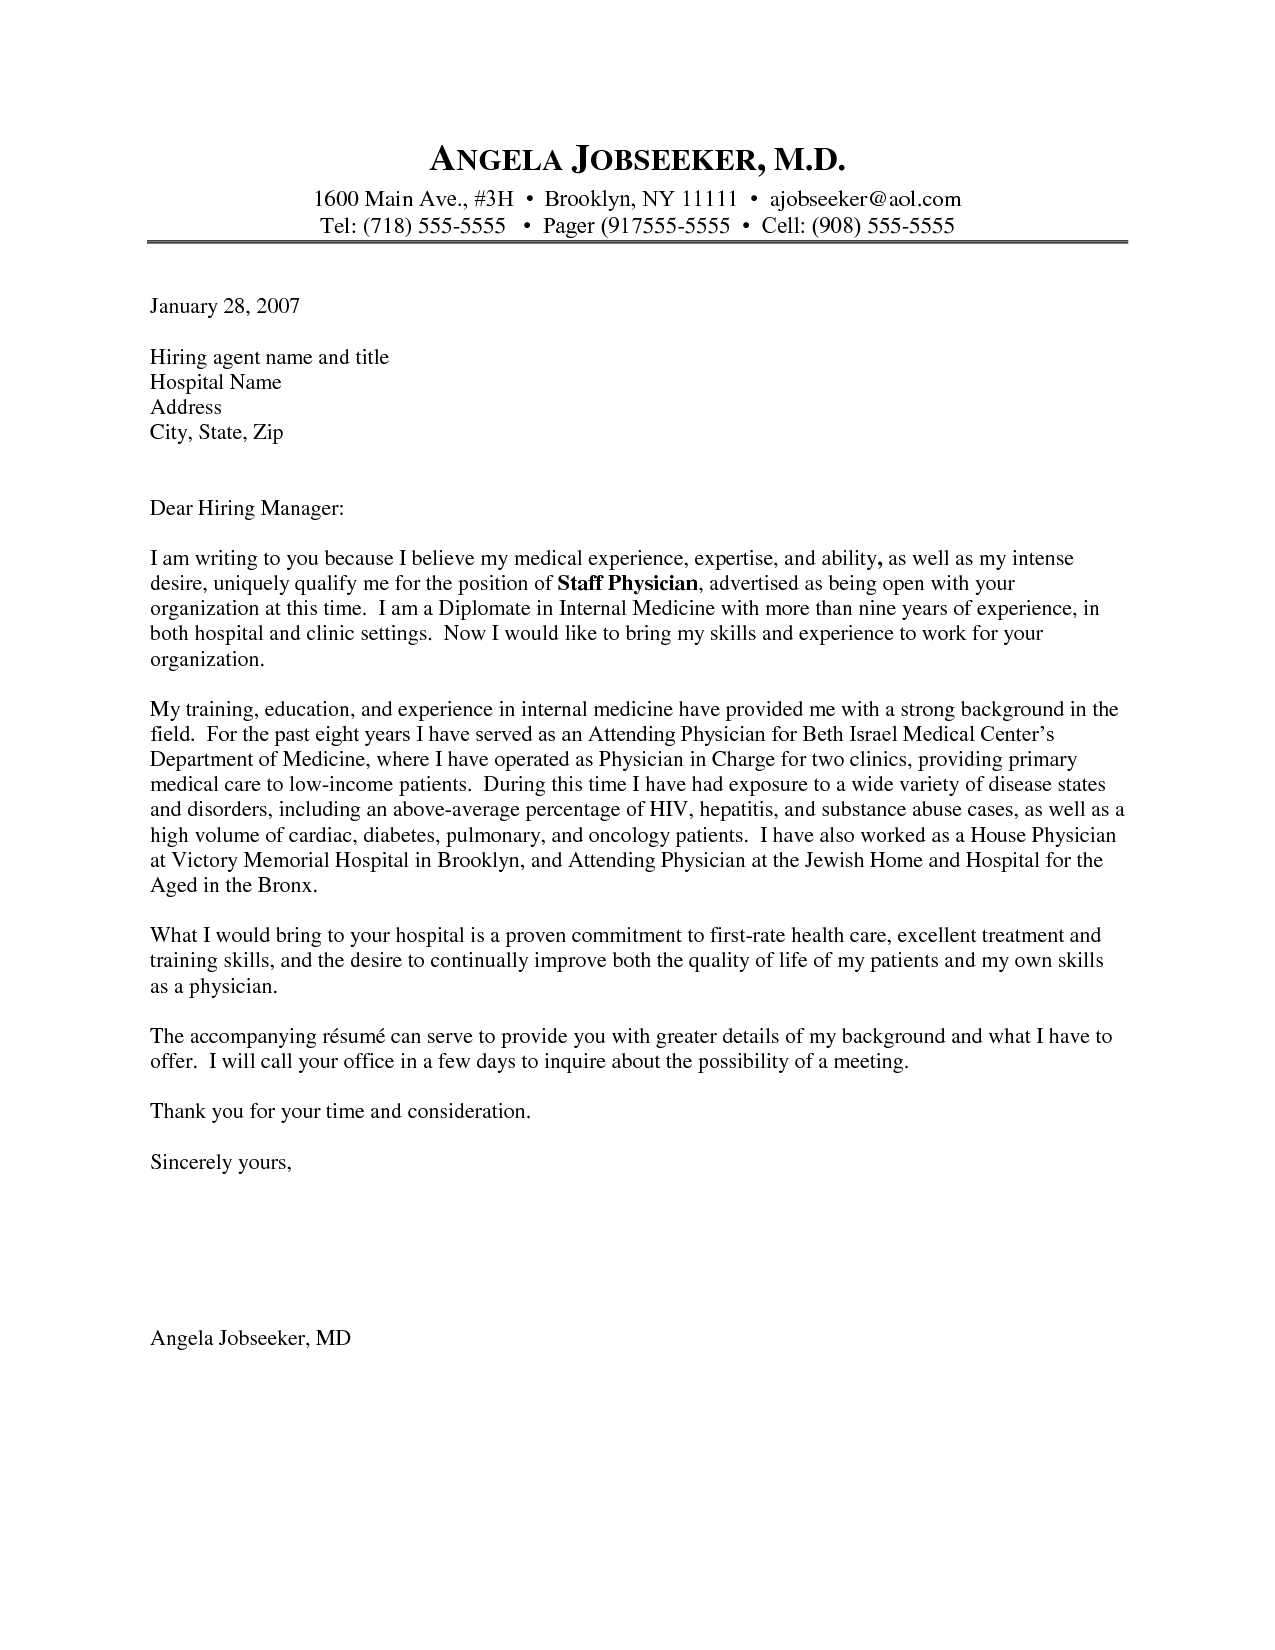 Examples of medical coverletters doctor cover letter for Cover letter for shadowing a doctor